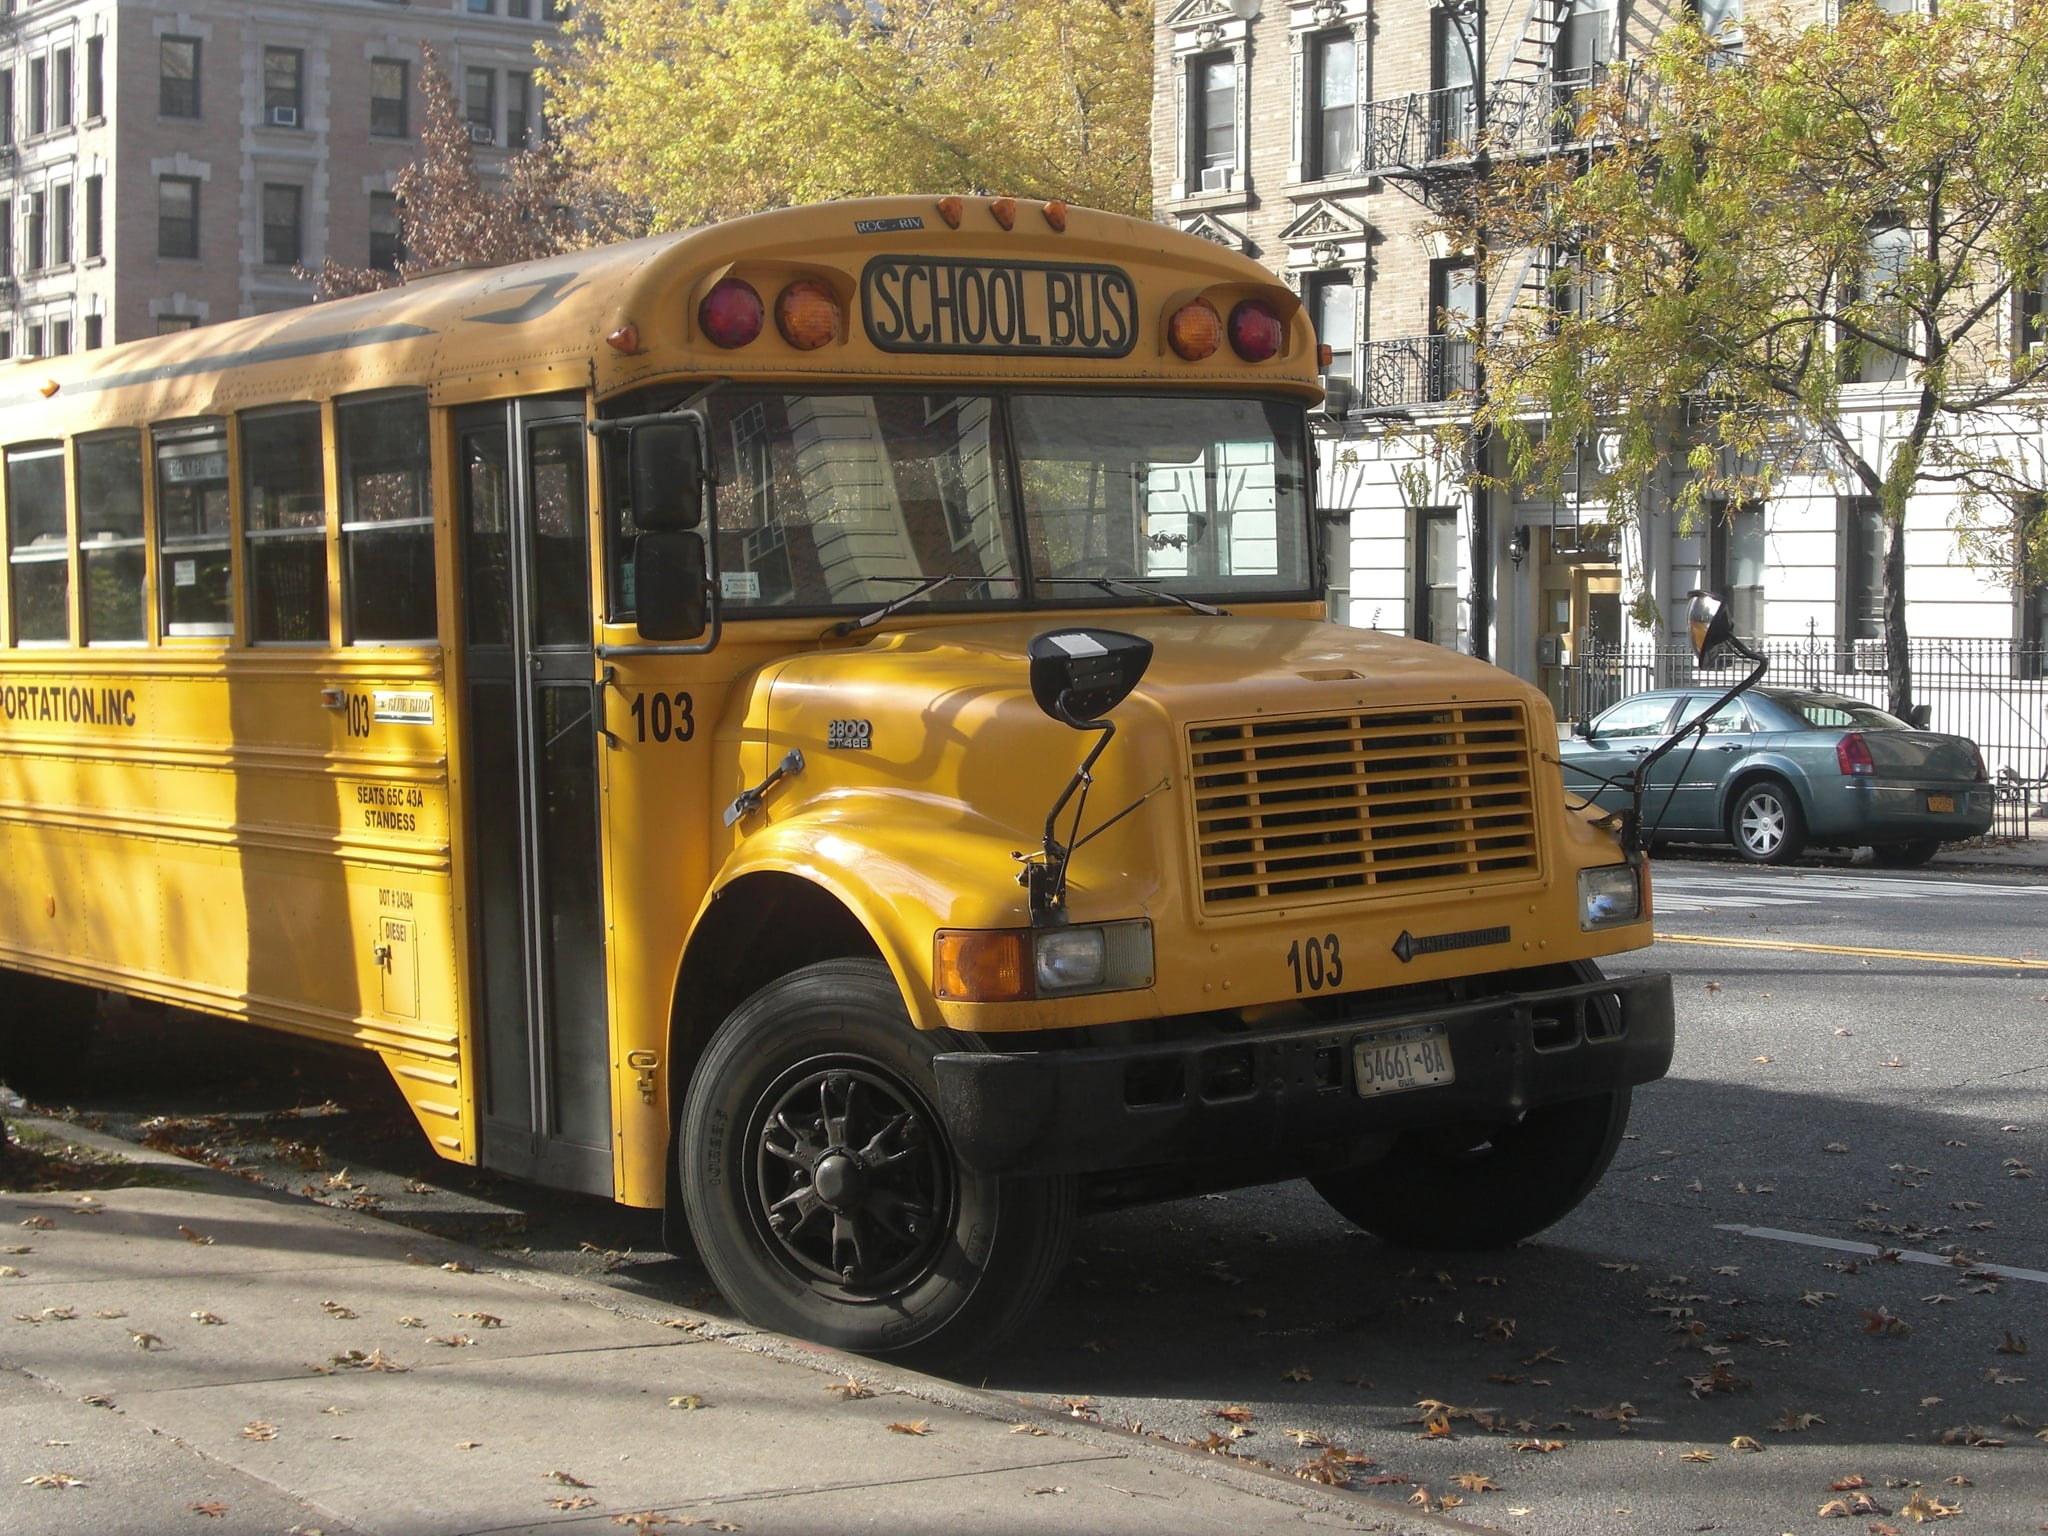 Citing safety, bus driver lets kids off 10 blocks away from school